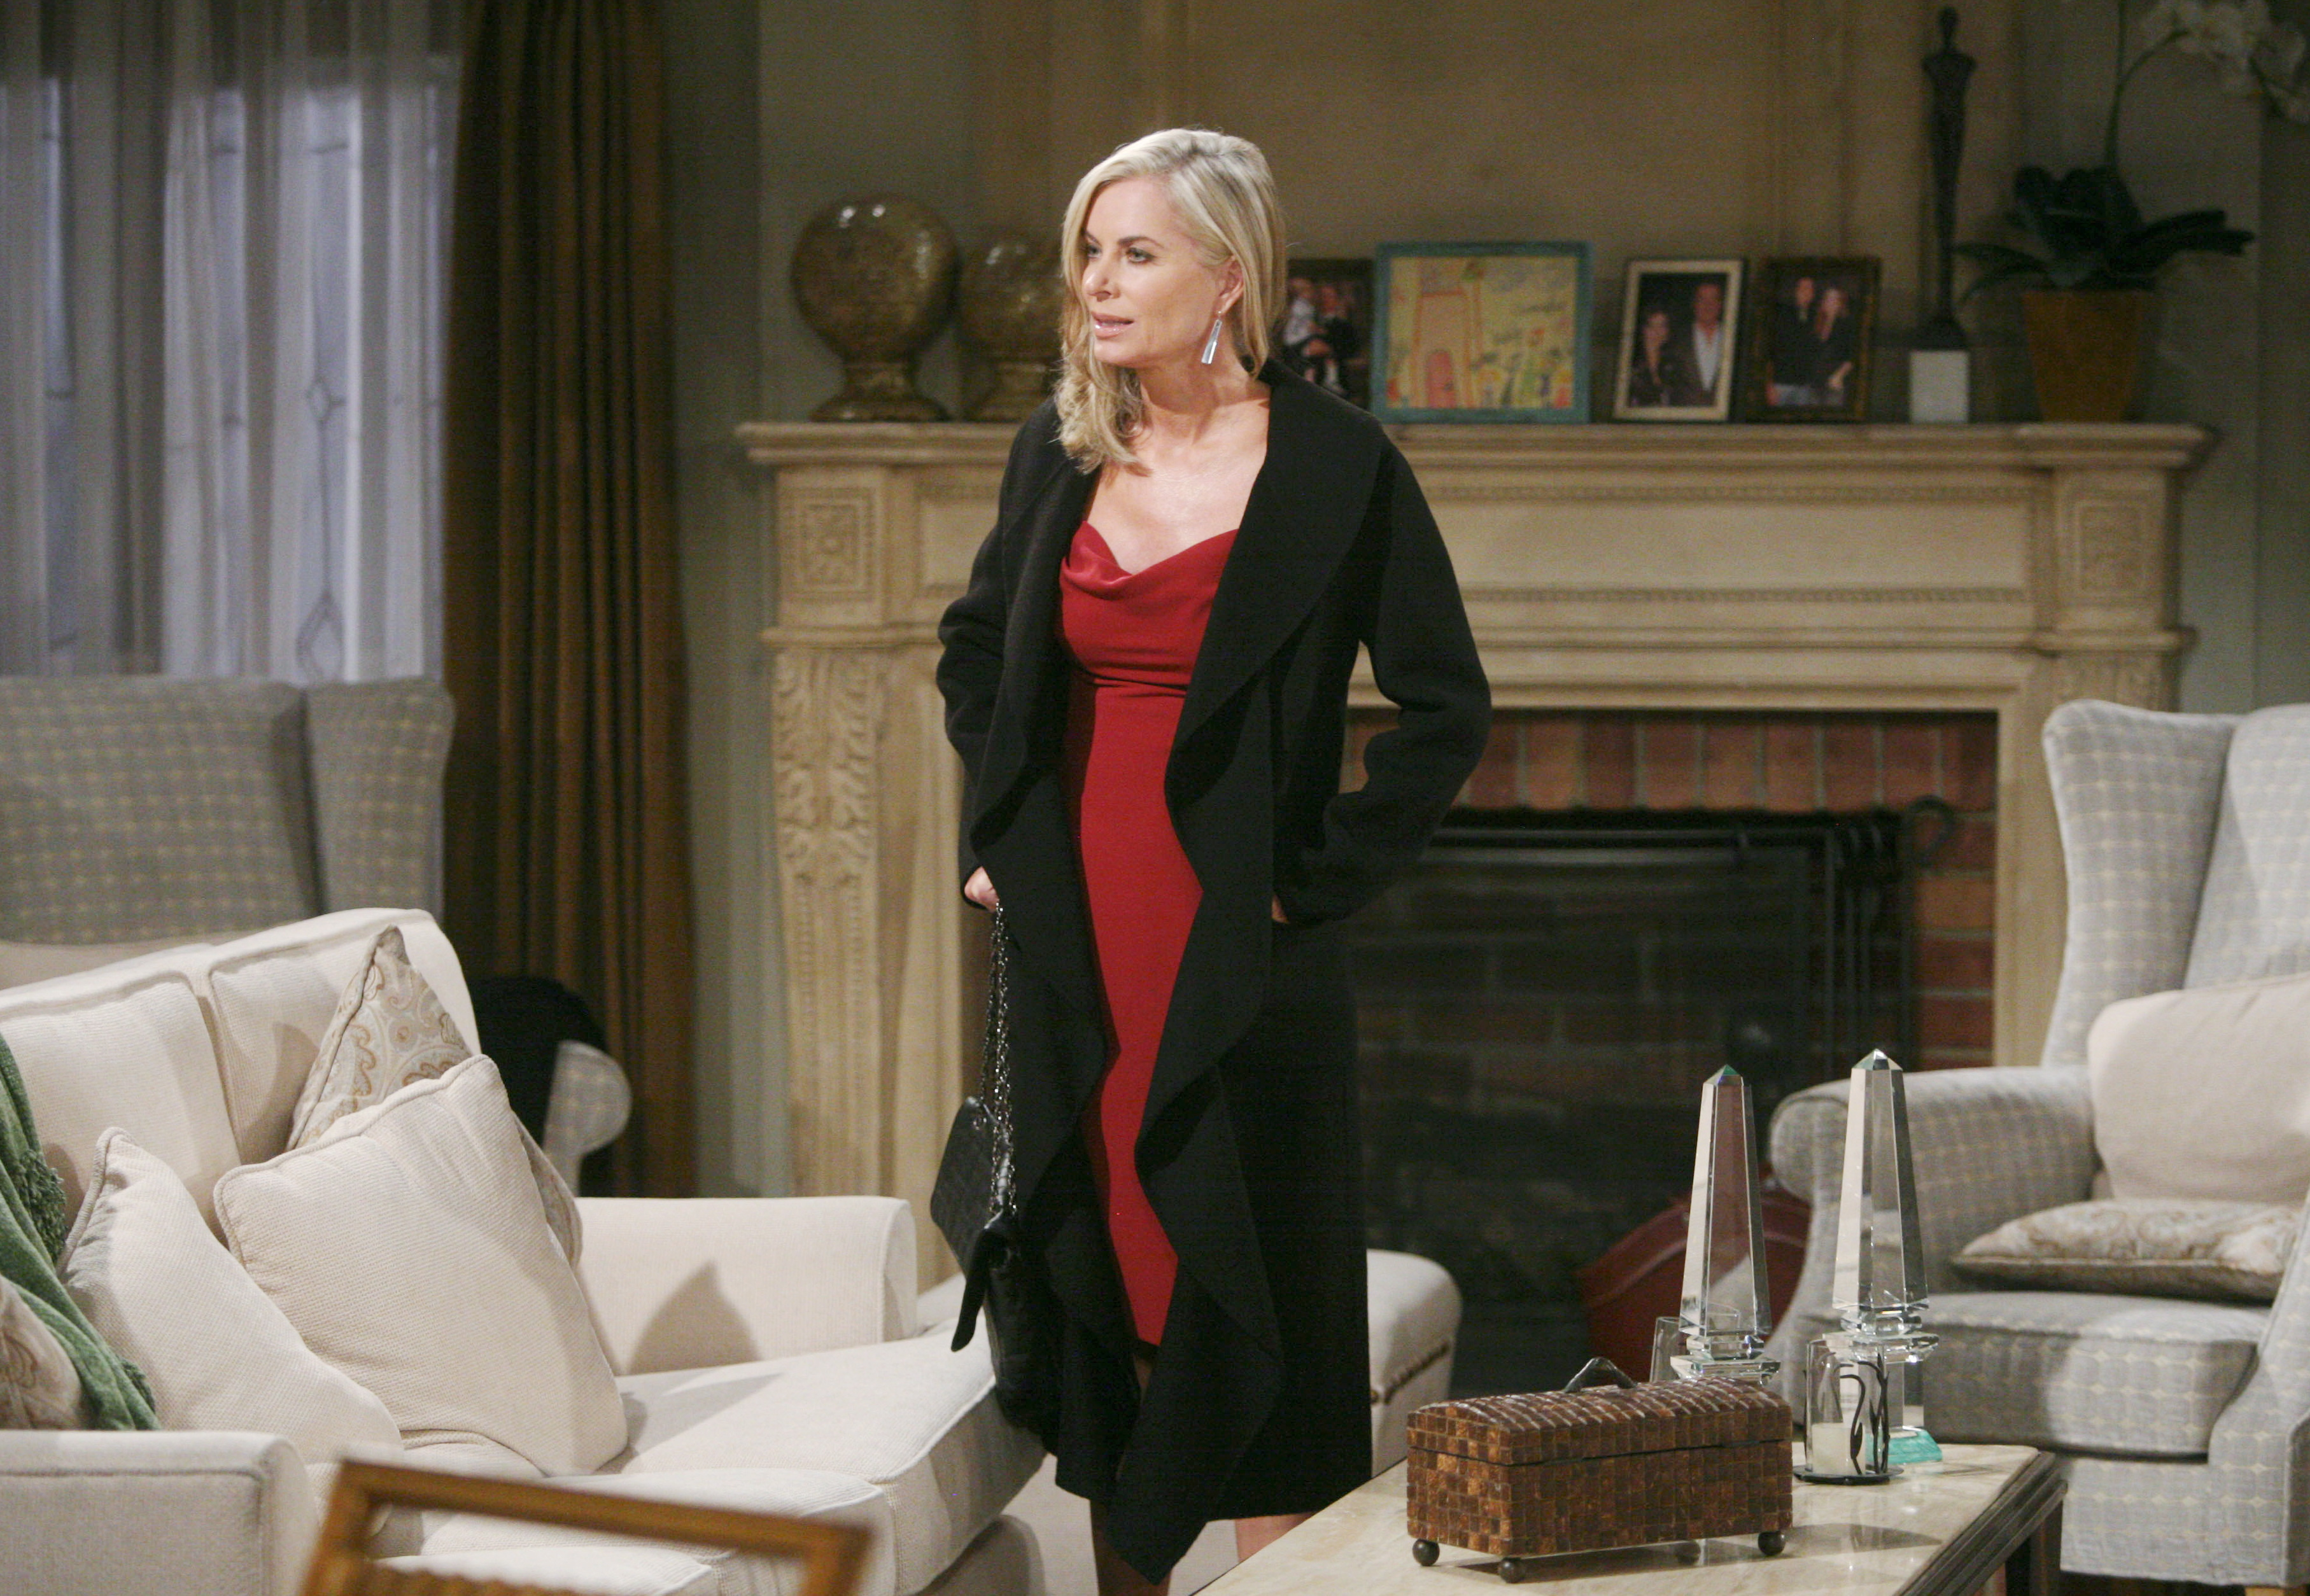 Ashley Abbott has a flair for fashion on The Young and the Restless.